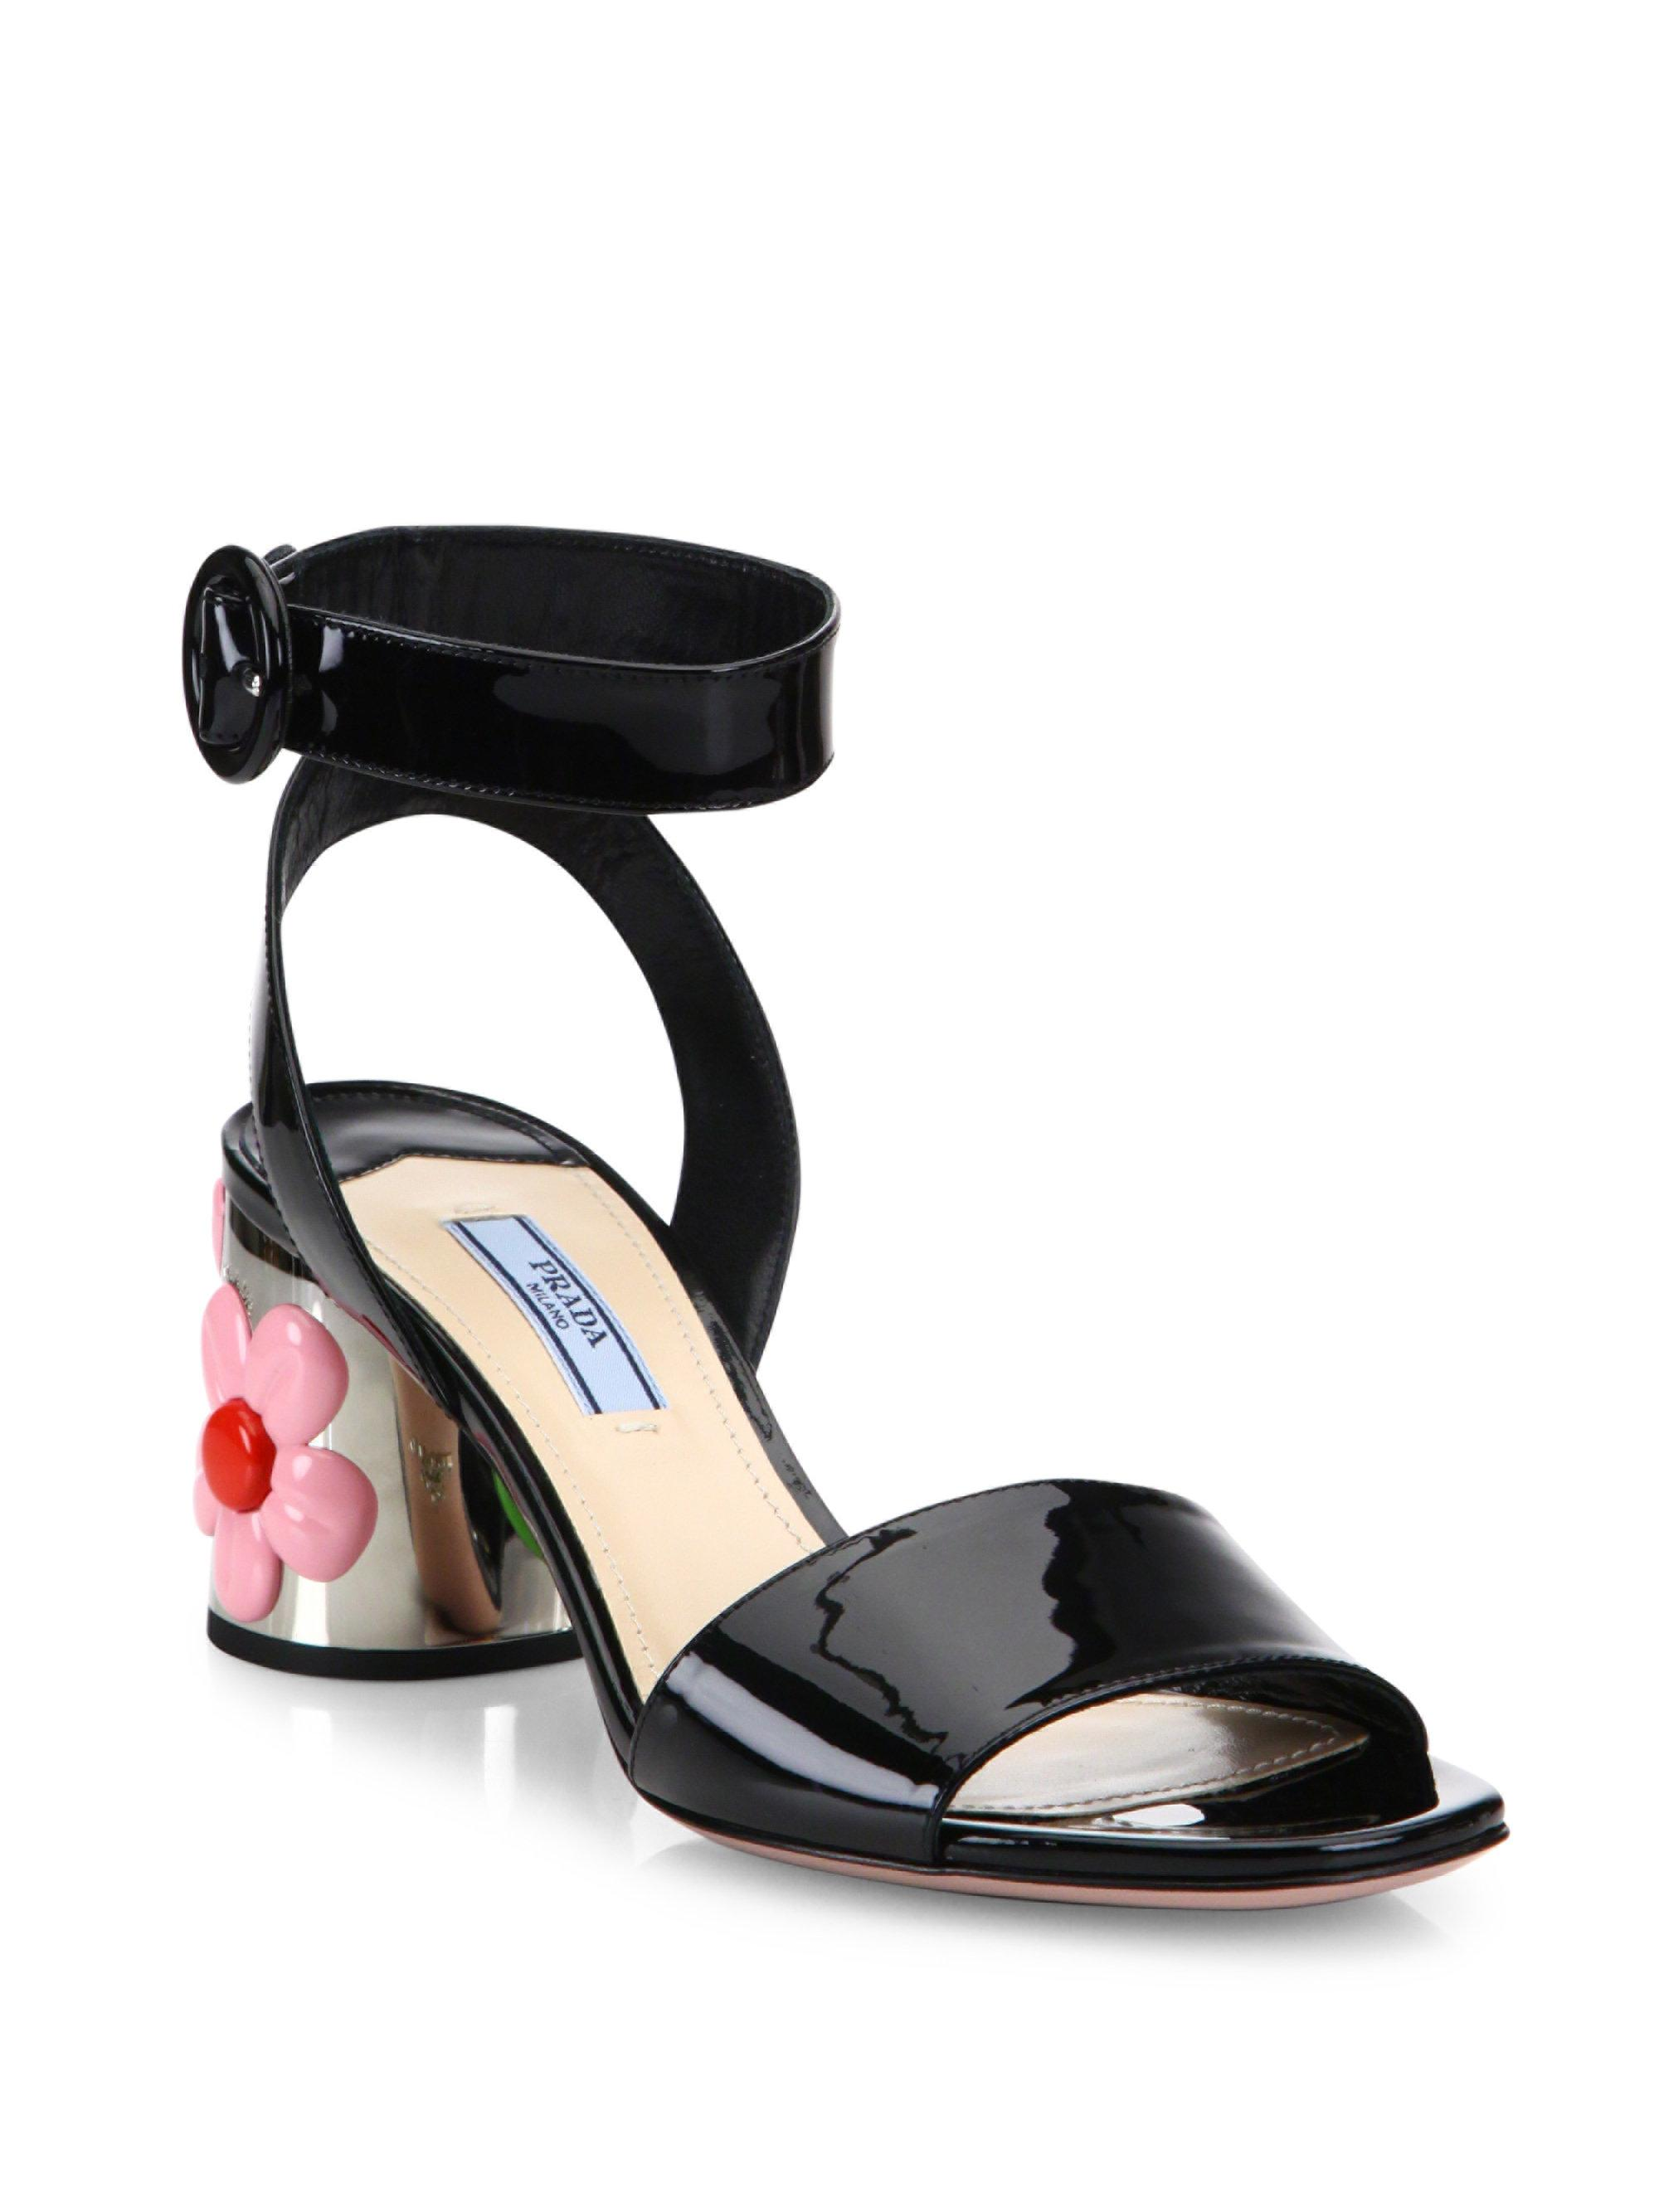 0c0fba844f16b9 Lyst - Prada Flower-heel Patent Leather Ankle-strap Sandals in Black